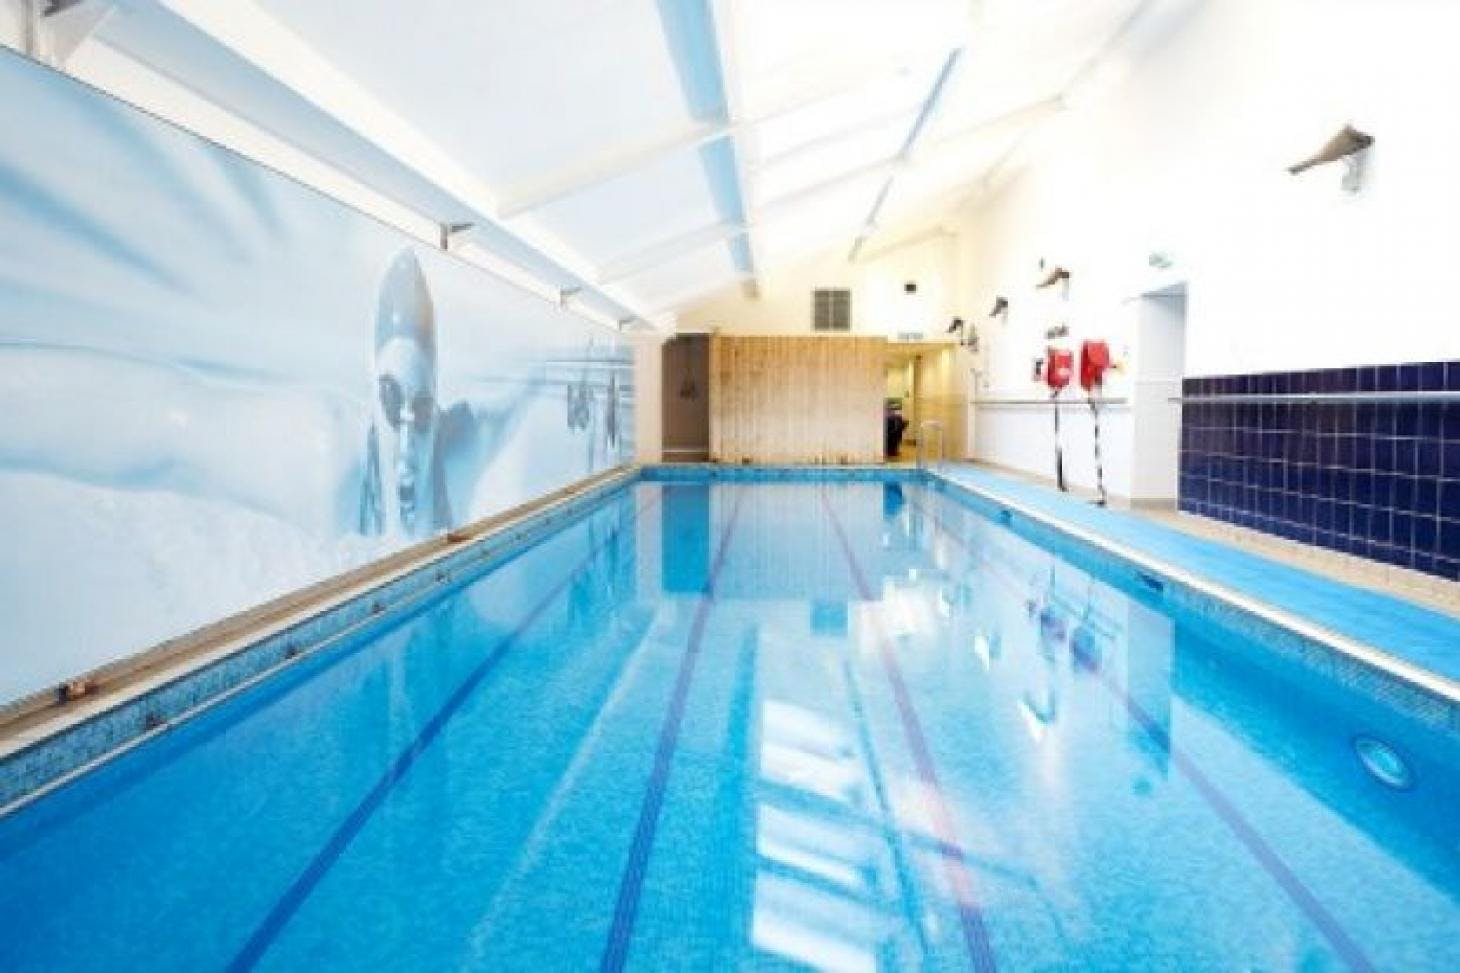 LA Fitness Golders Green Indoor swimming pool